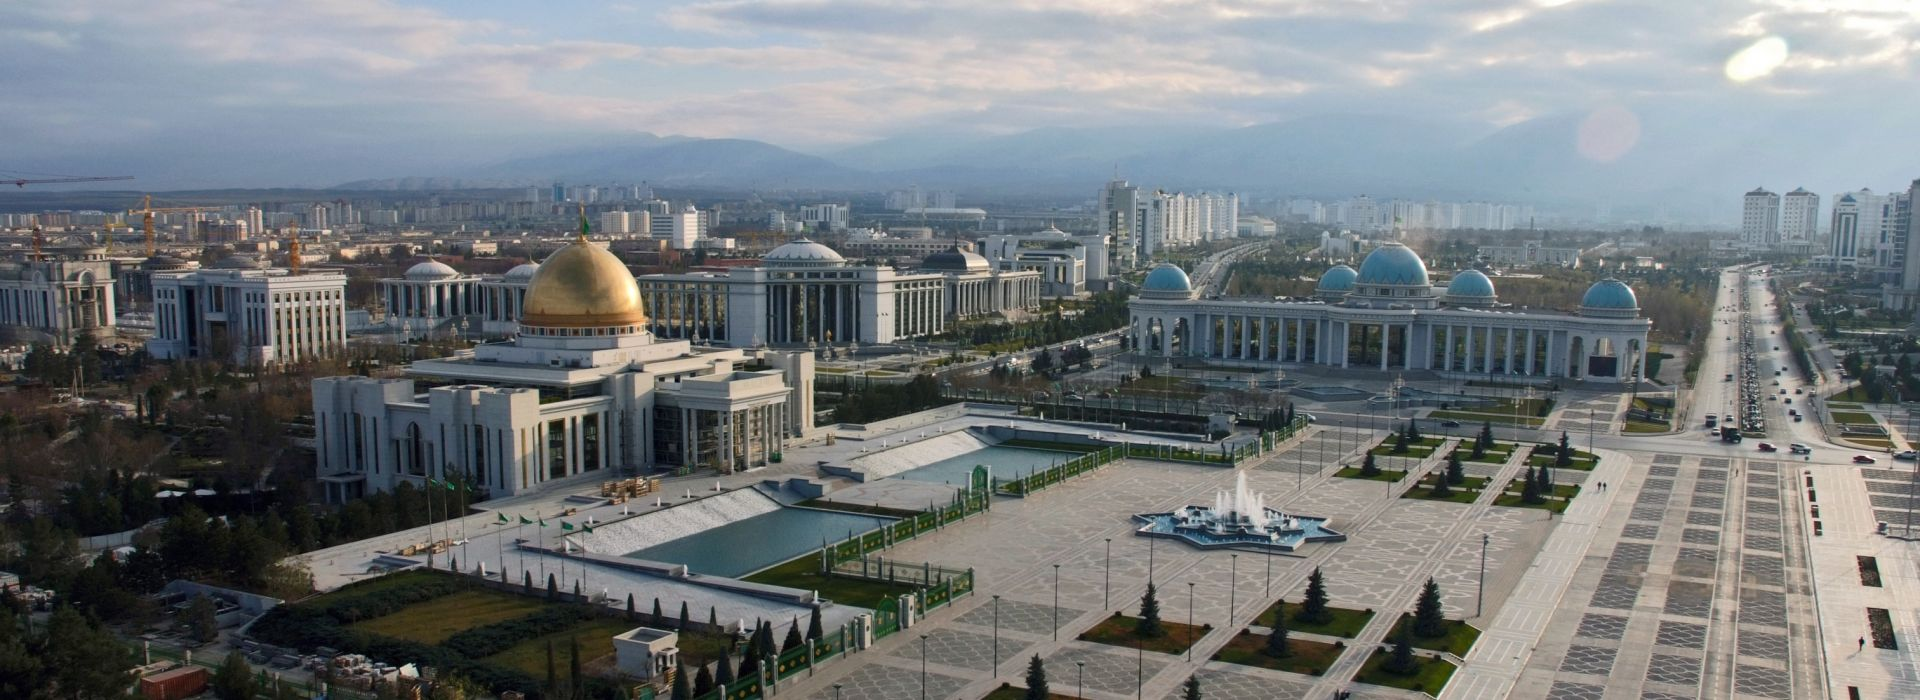 Travelling Turkmenistan - Tours and Trips in Turkmenistan